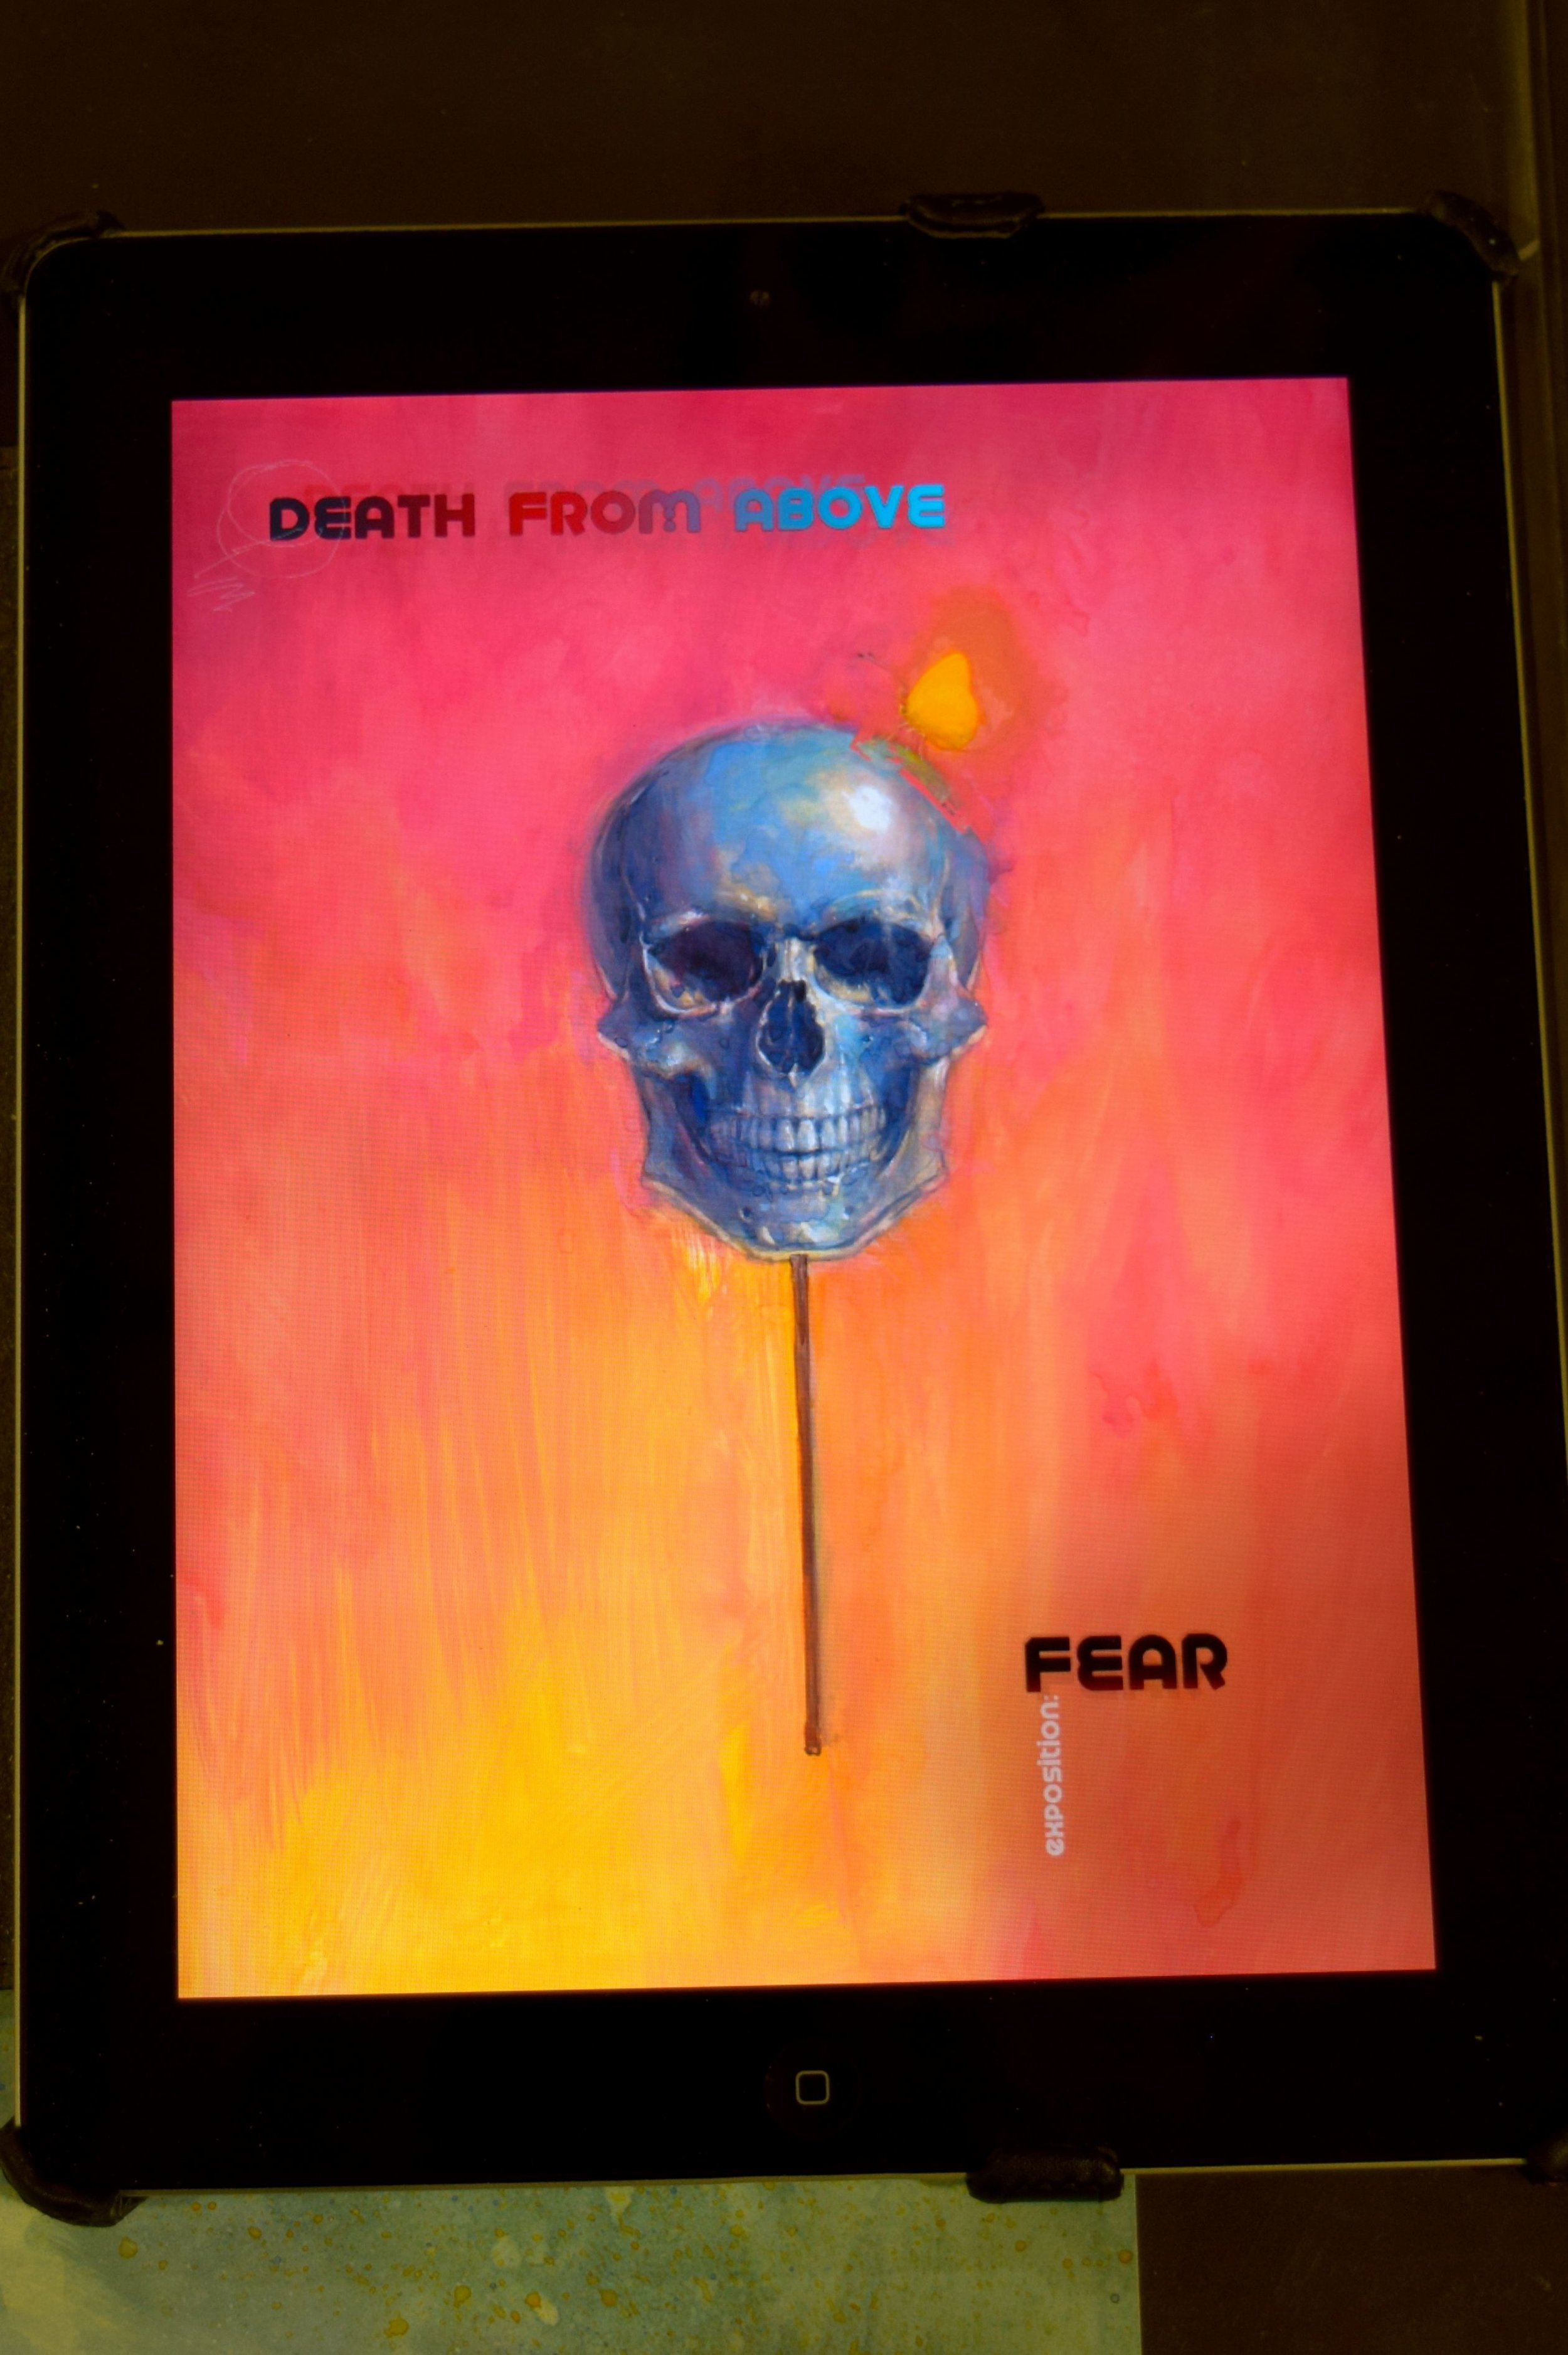 Death From Above cover image from Felipe Echevarria.